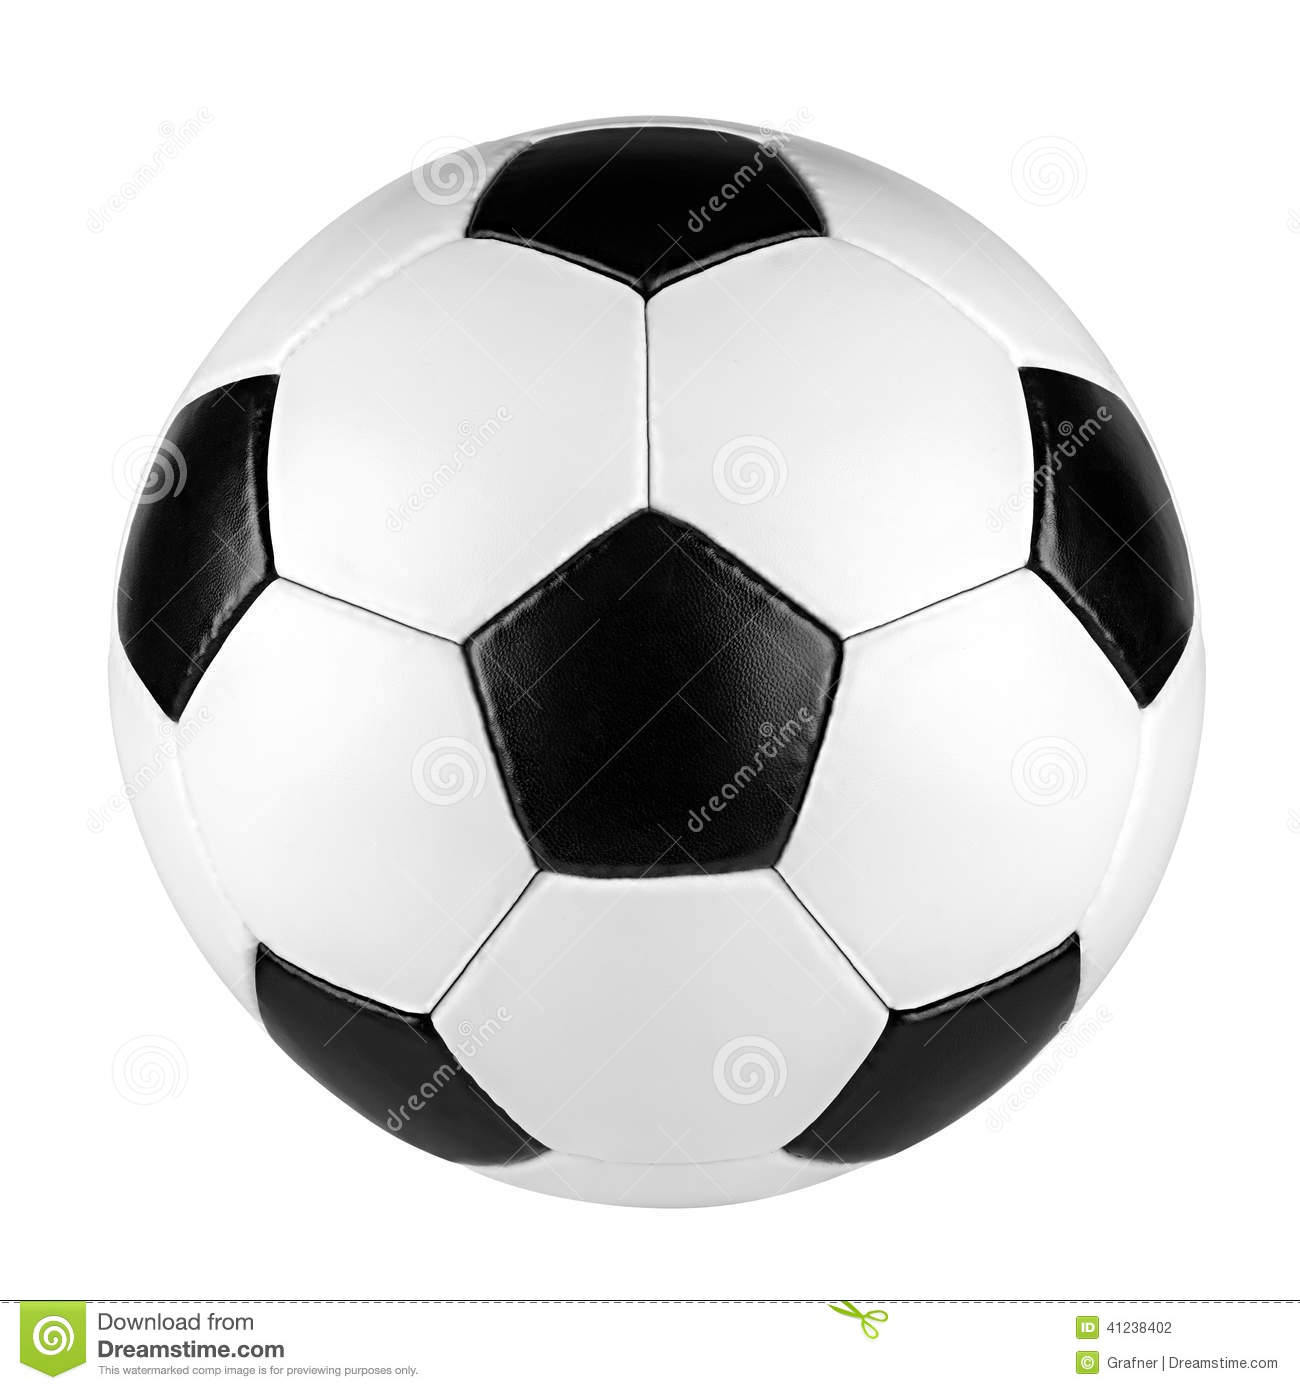 635564c16be Retro soccer ball stock photo. Image of background